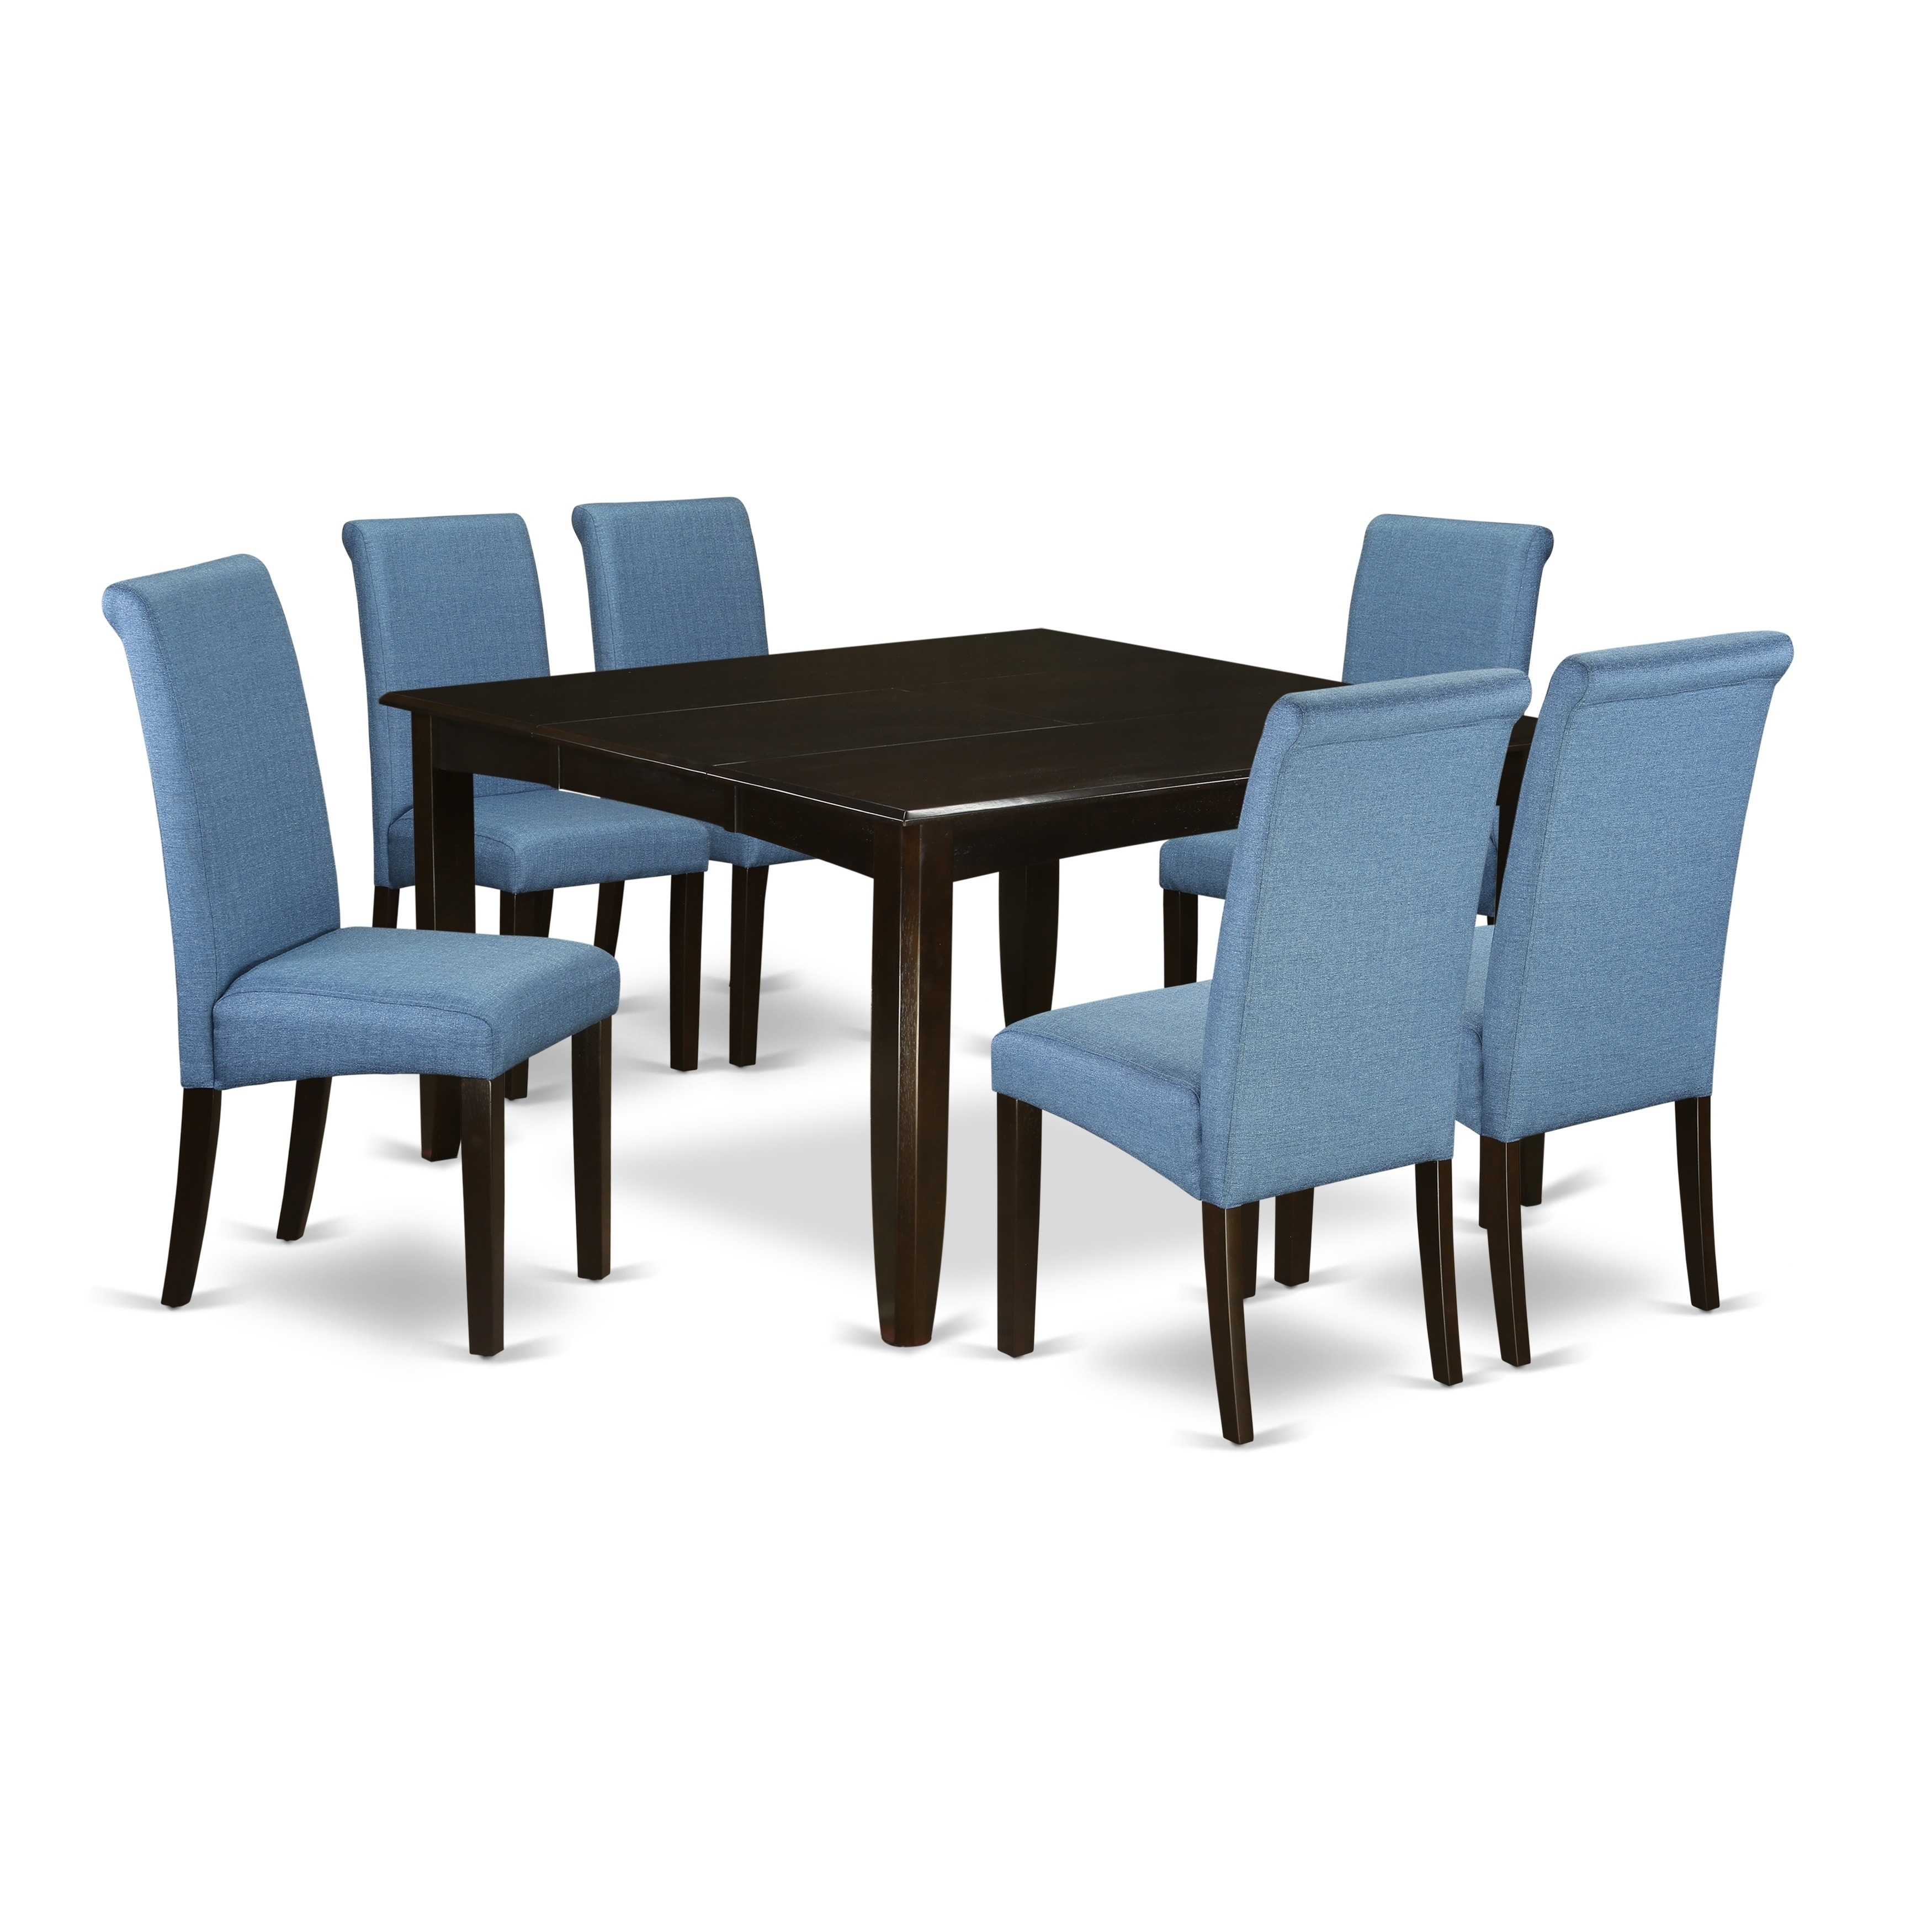 5pc Square Kitchen Table With Elegant Parson Chairs Number Of Chair Option